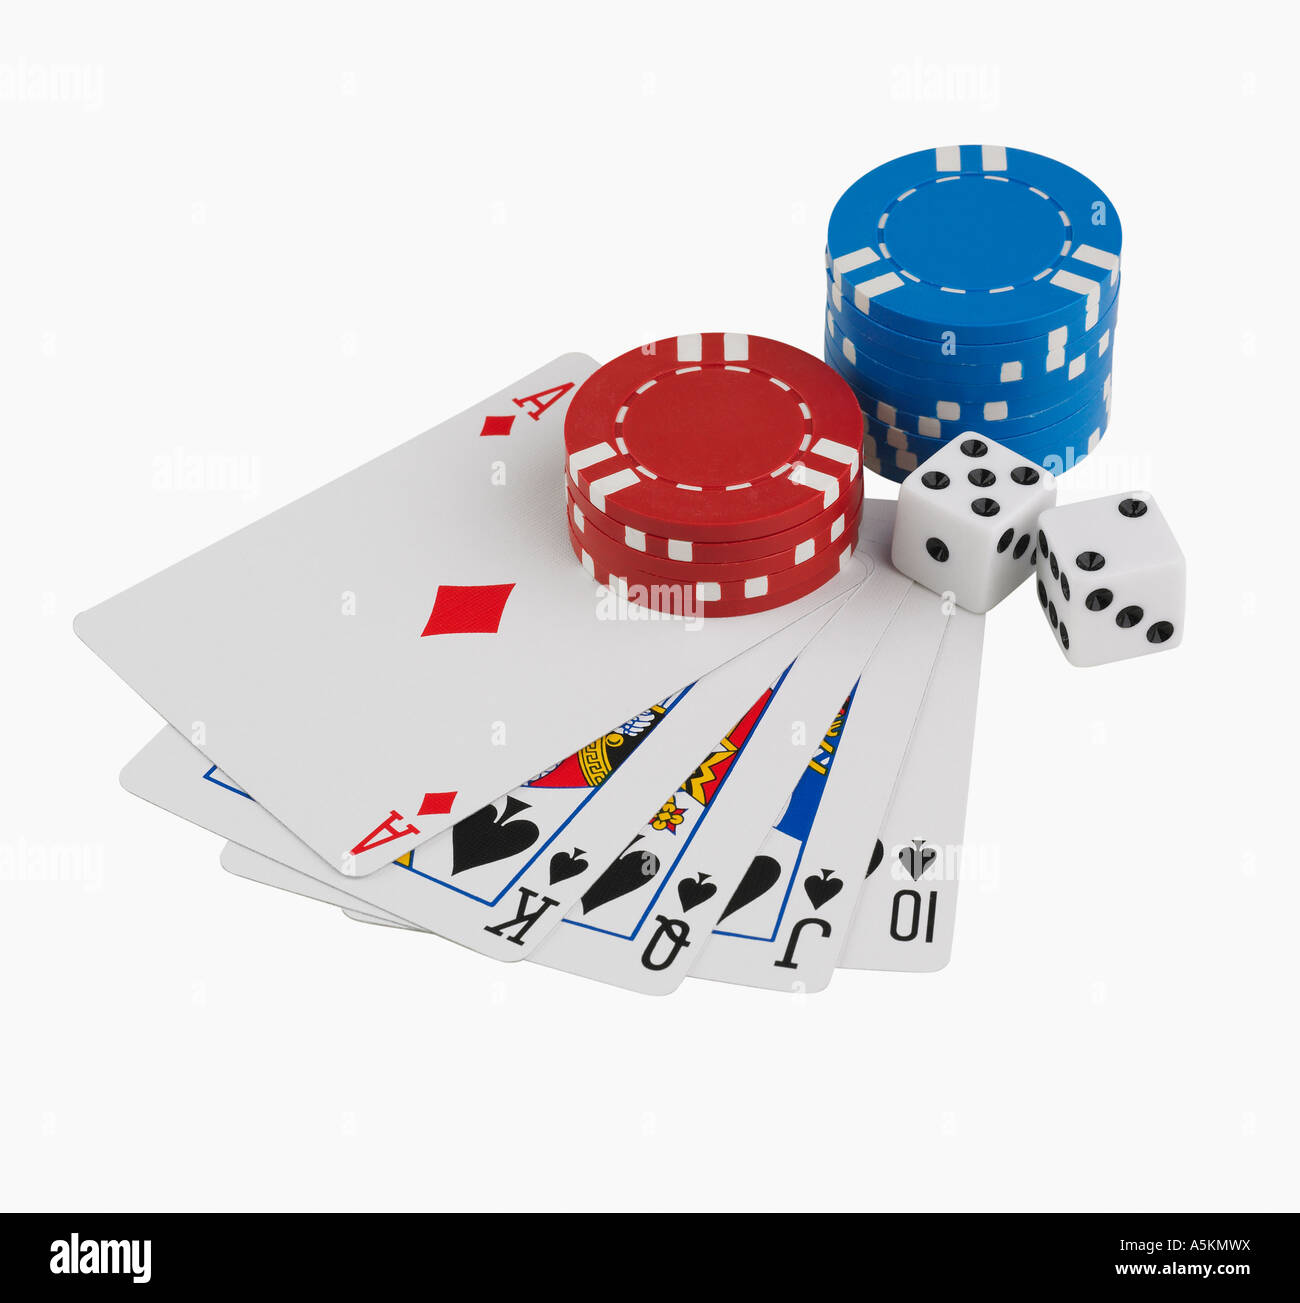 Studio shot of playing cards and poker chips - Stock Image